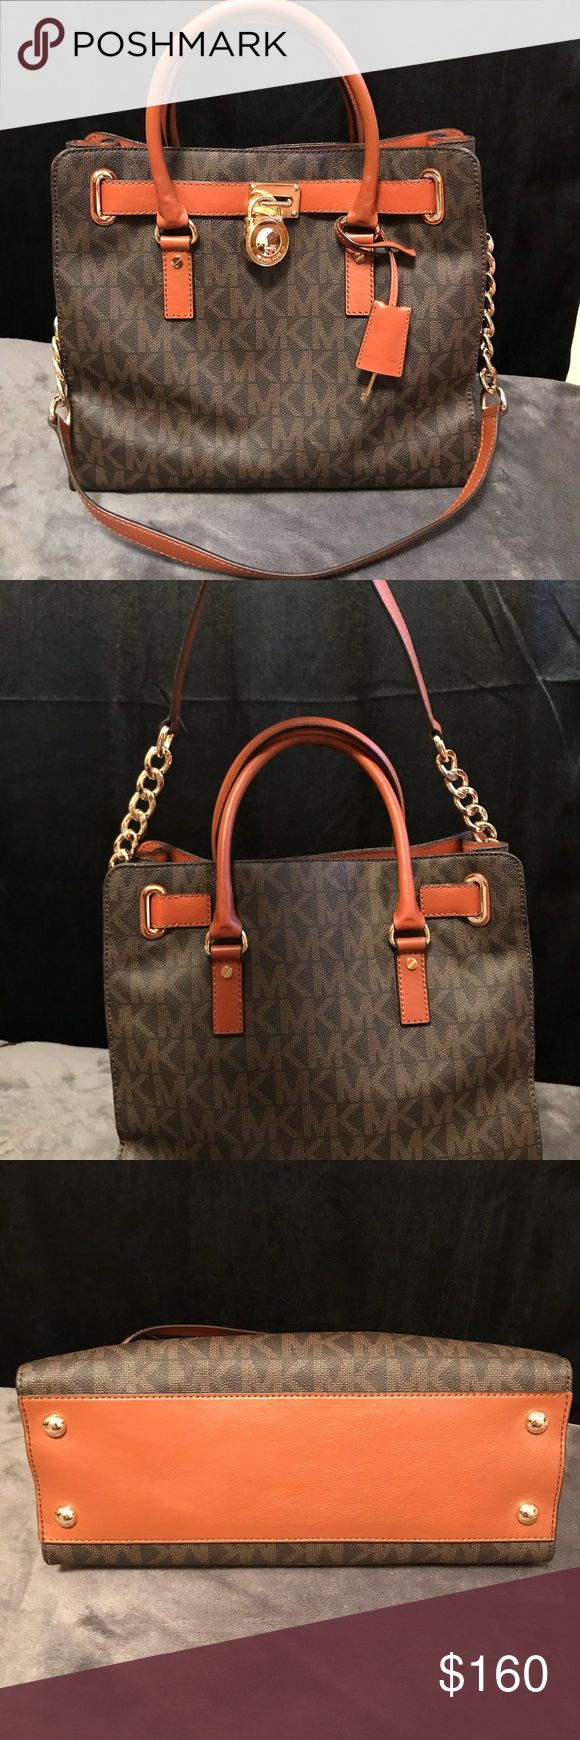 """Michael Kors Large Brown Hamilton Satchel • 100% Authentic Brown Signature Hamilton  • Gold-tone hardware w/Lock & Key on front • PVC Leather w/magnetic snap closure  • 4 signature metal feet on bottom for protection  • Fully Lined interior w/signature fabric, 1 zip slip pocket, 1 Cellphone pocket w/3 slip pockets & key clip  • Measurements 14""""L x 12""""H x 5-1/2""""D • Double-roll handles w/4-1/2"""" drop & 12"""" drop shoulder strap, comes with dust bag  • NO RIPS/TEARS/STAINS. (EUC) Michael Kors Bags…"""